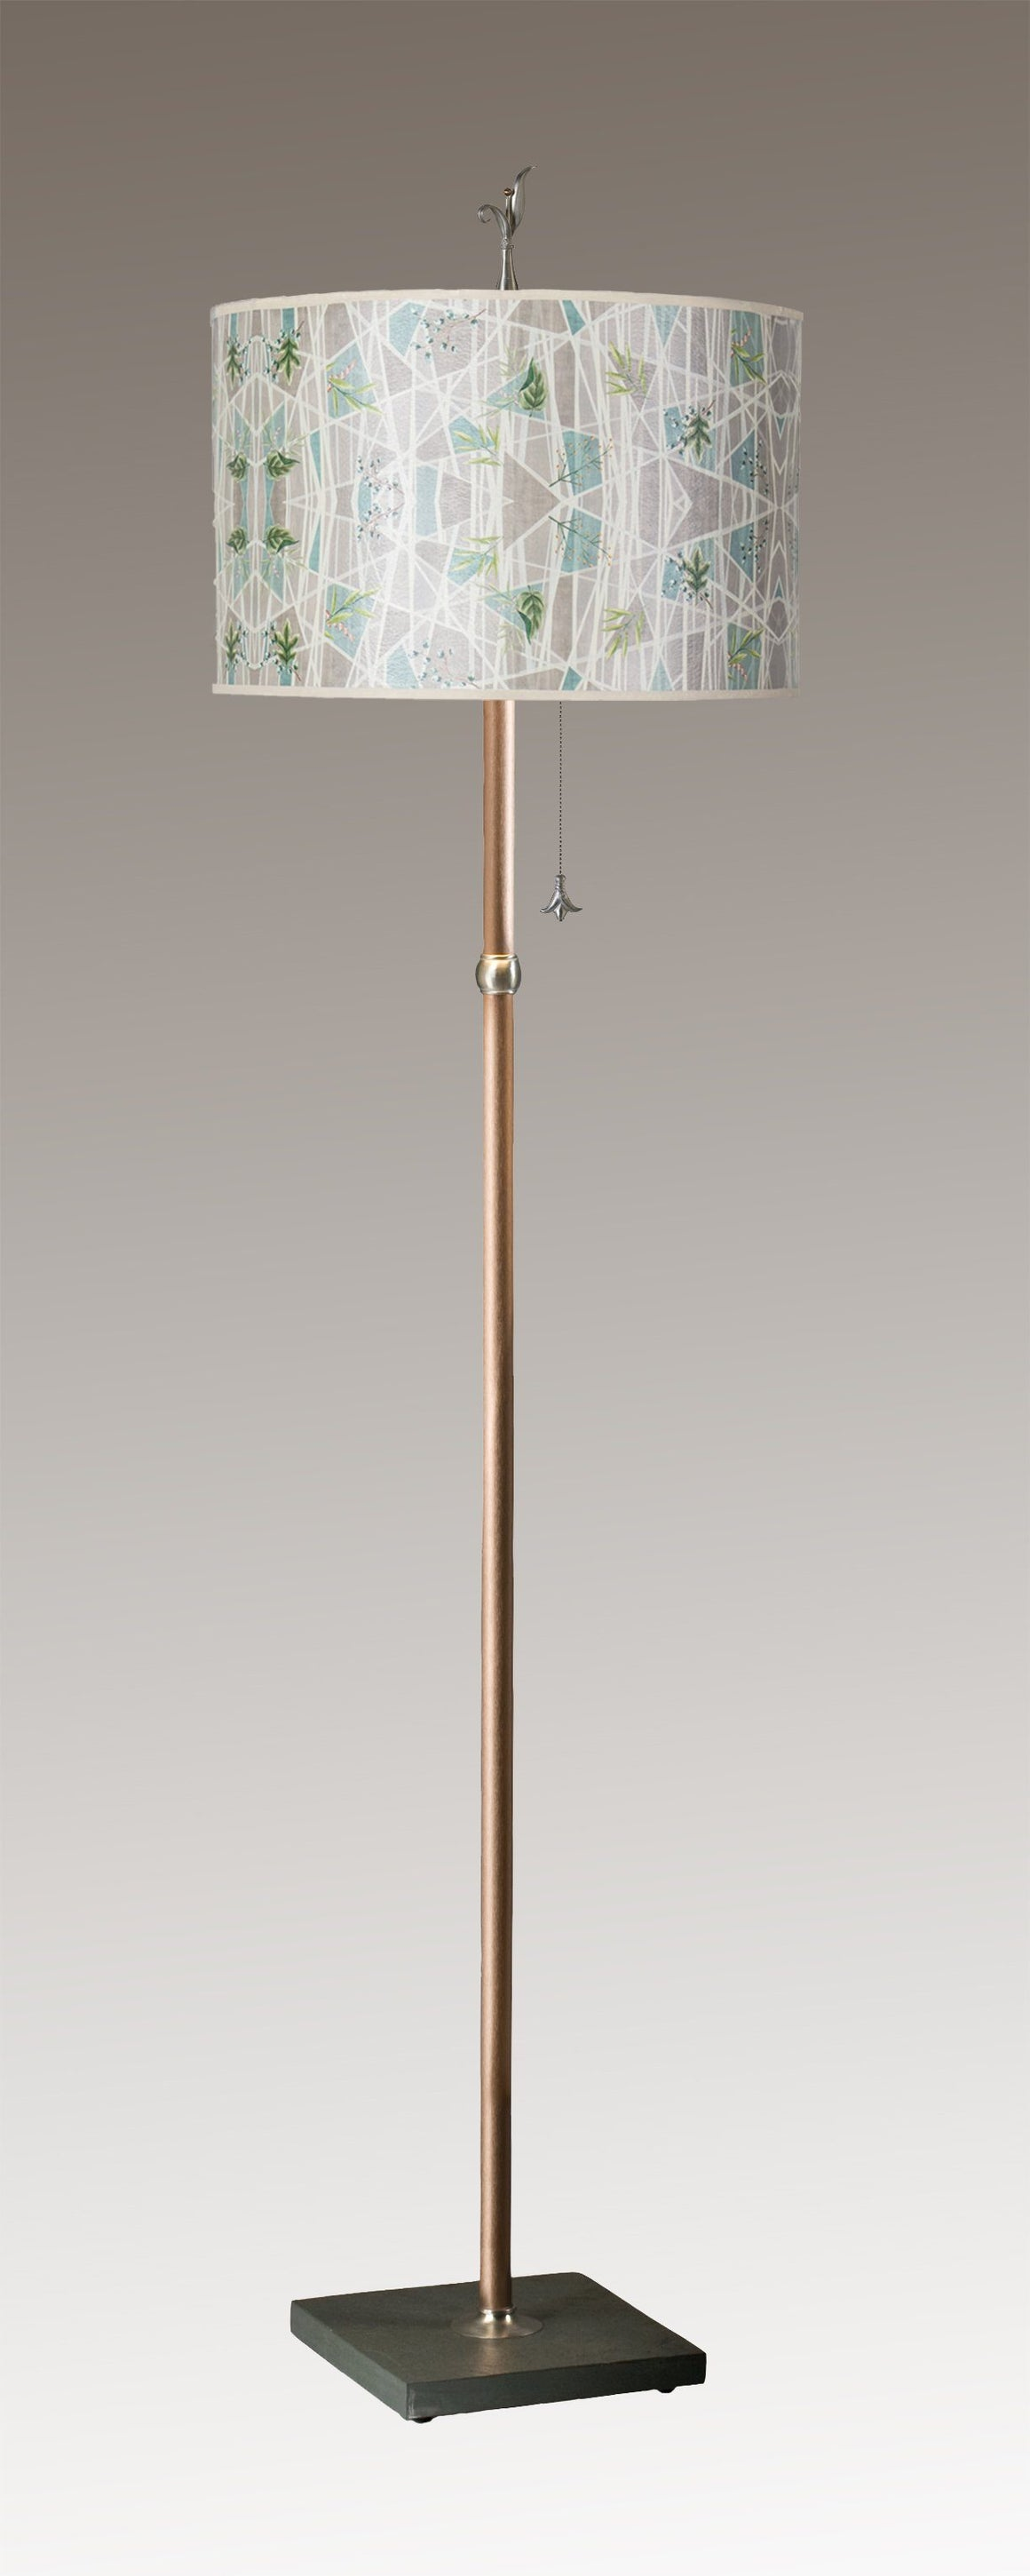 Copper Floor Lamp on Vermont Slate with Large Drum Shade in Prism